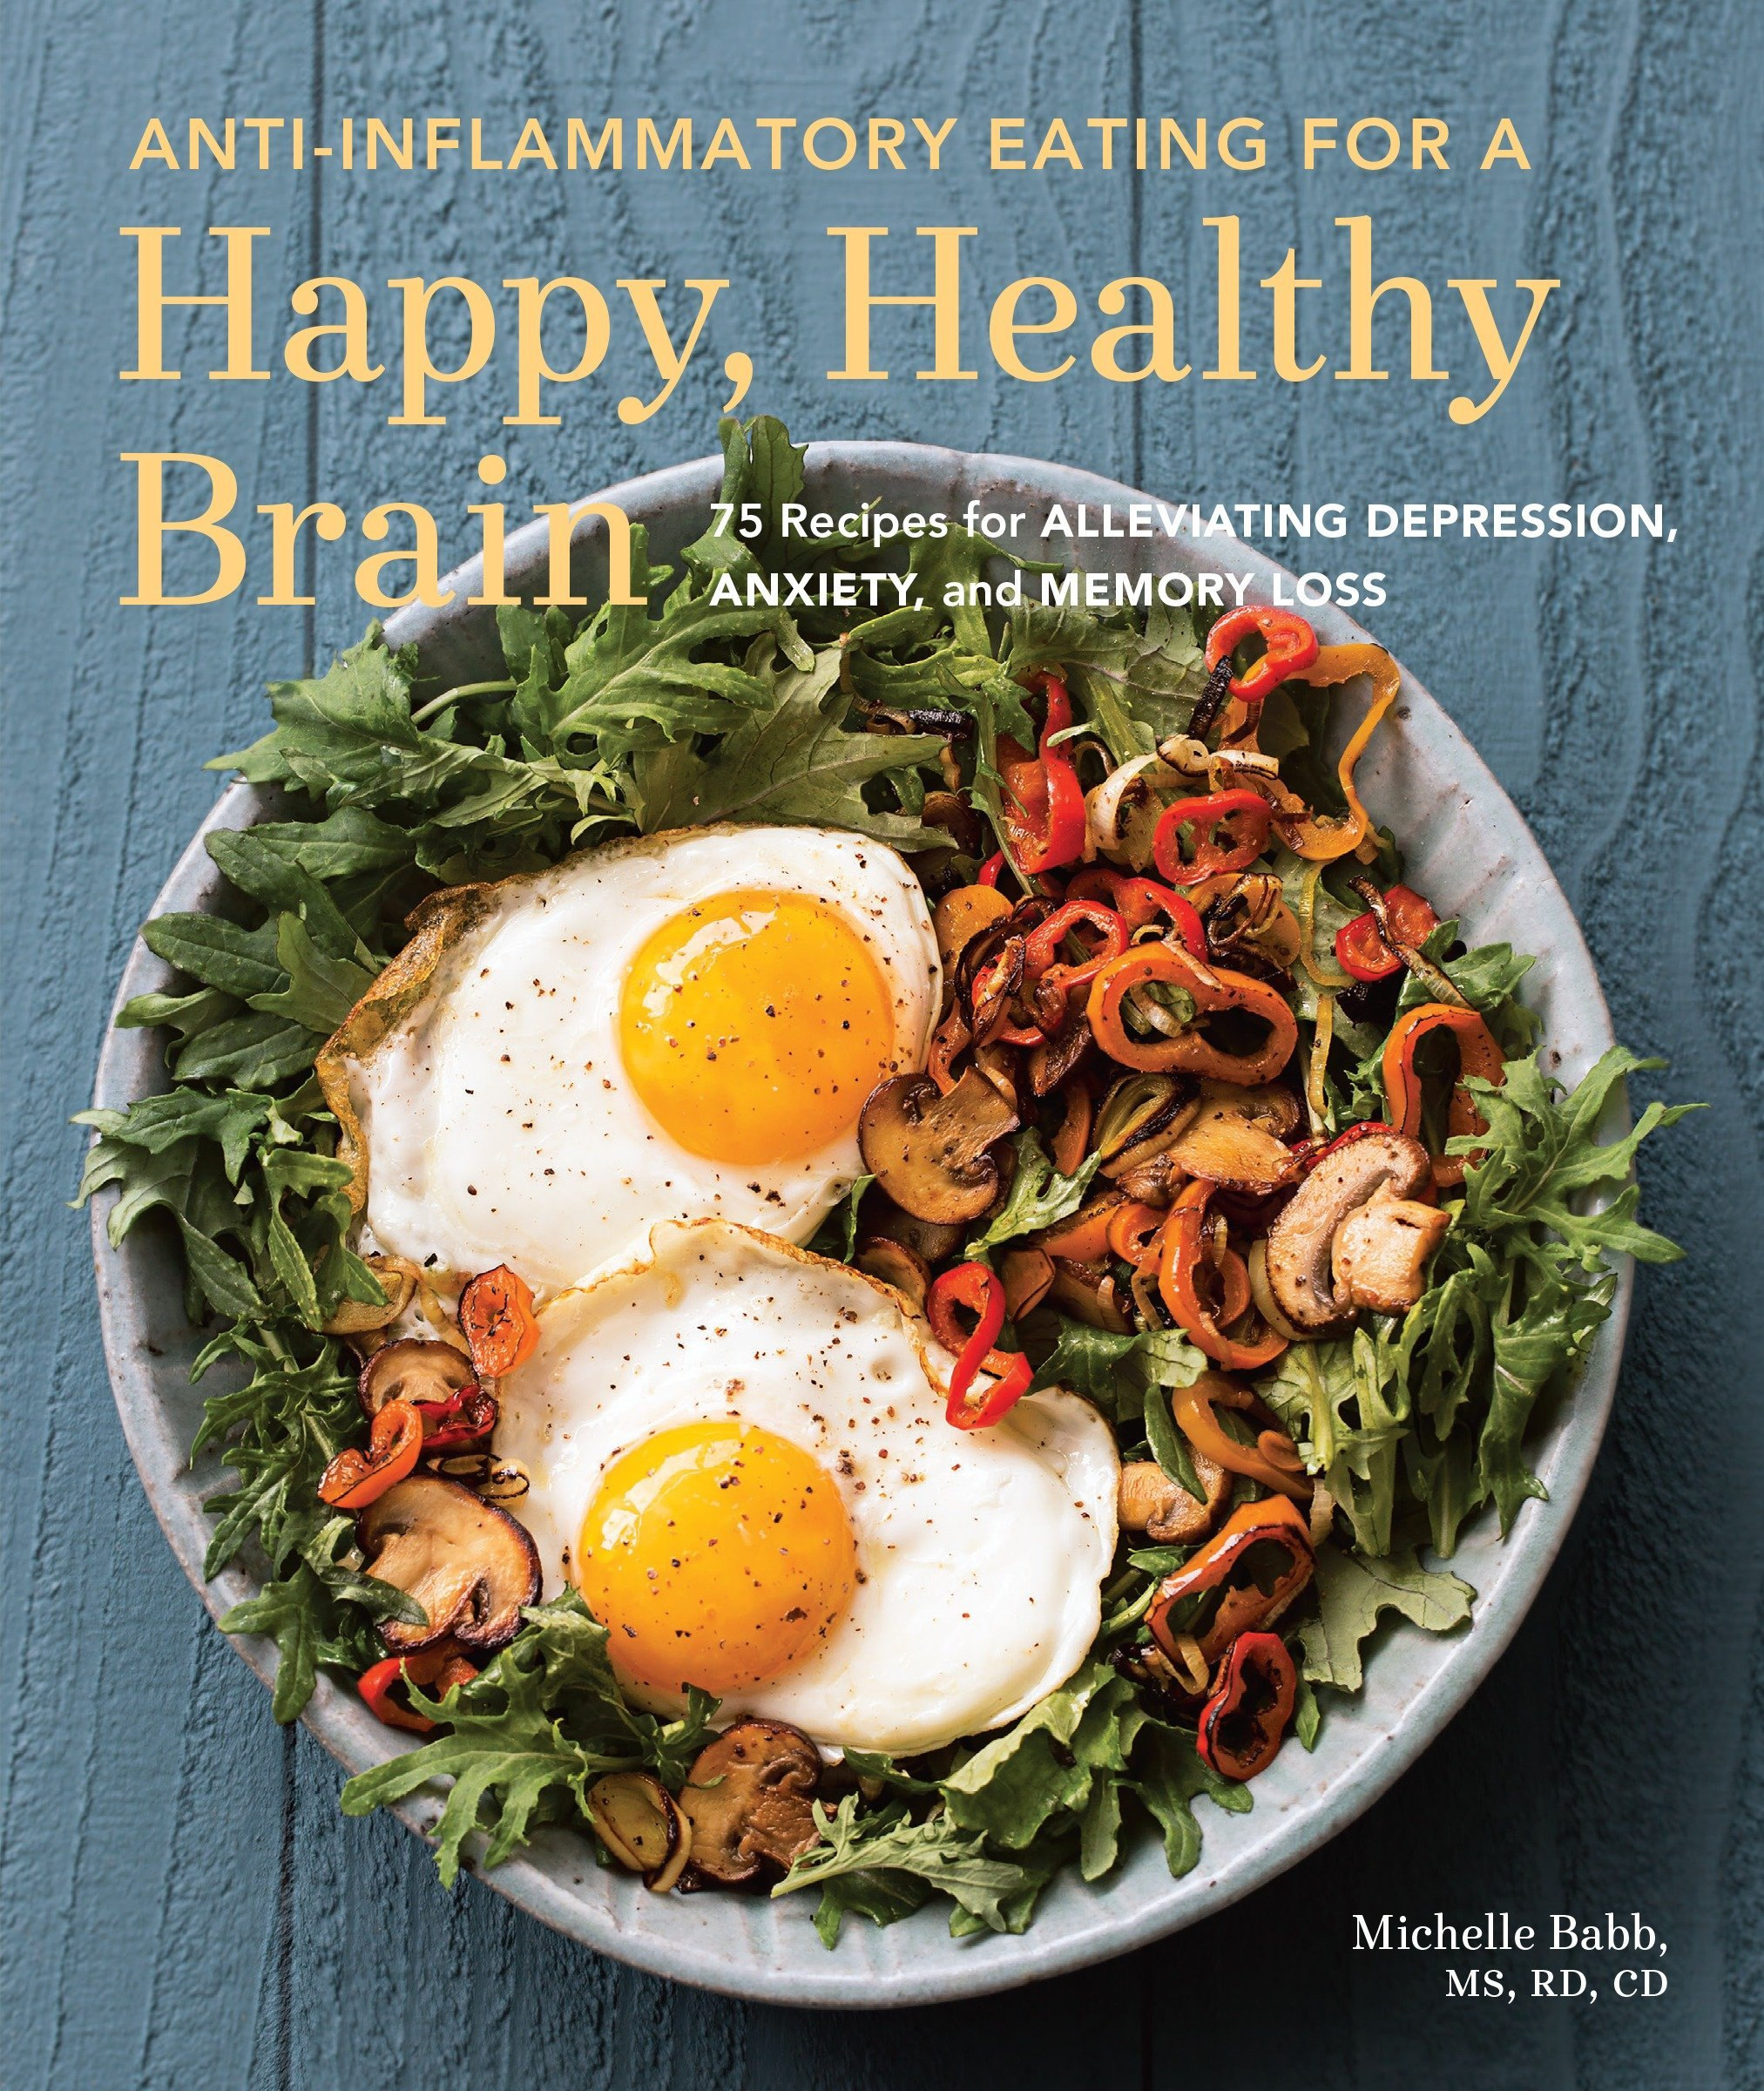 Anti-Inflammatory Eating for a Happy, Healthy Brain: 75 Recipes for Alleviating Depression, Anxiety, and Memory Loss pdf epub